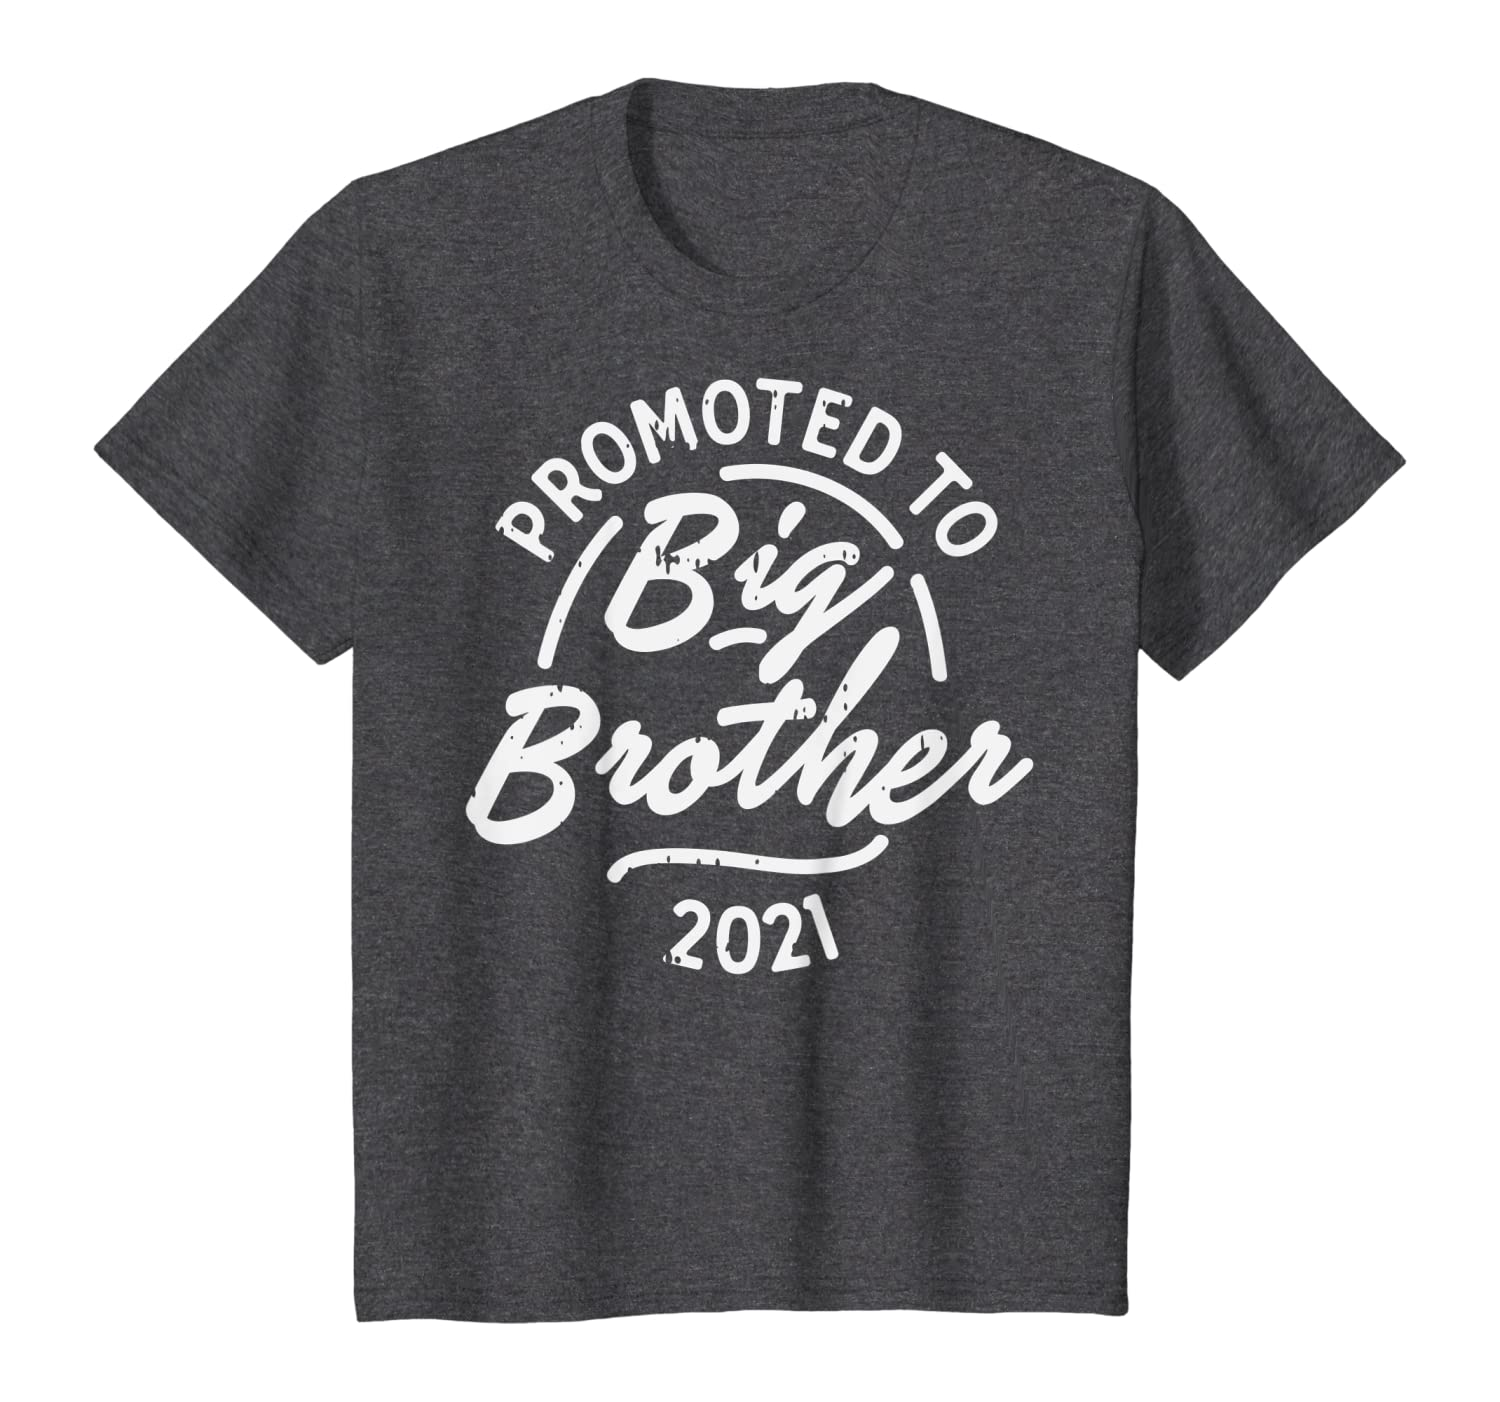 Promoted Big Brother 2021 Pregnancy Announcement Boys Gift Maglietta